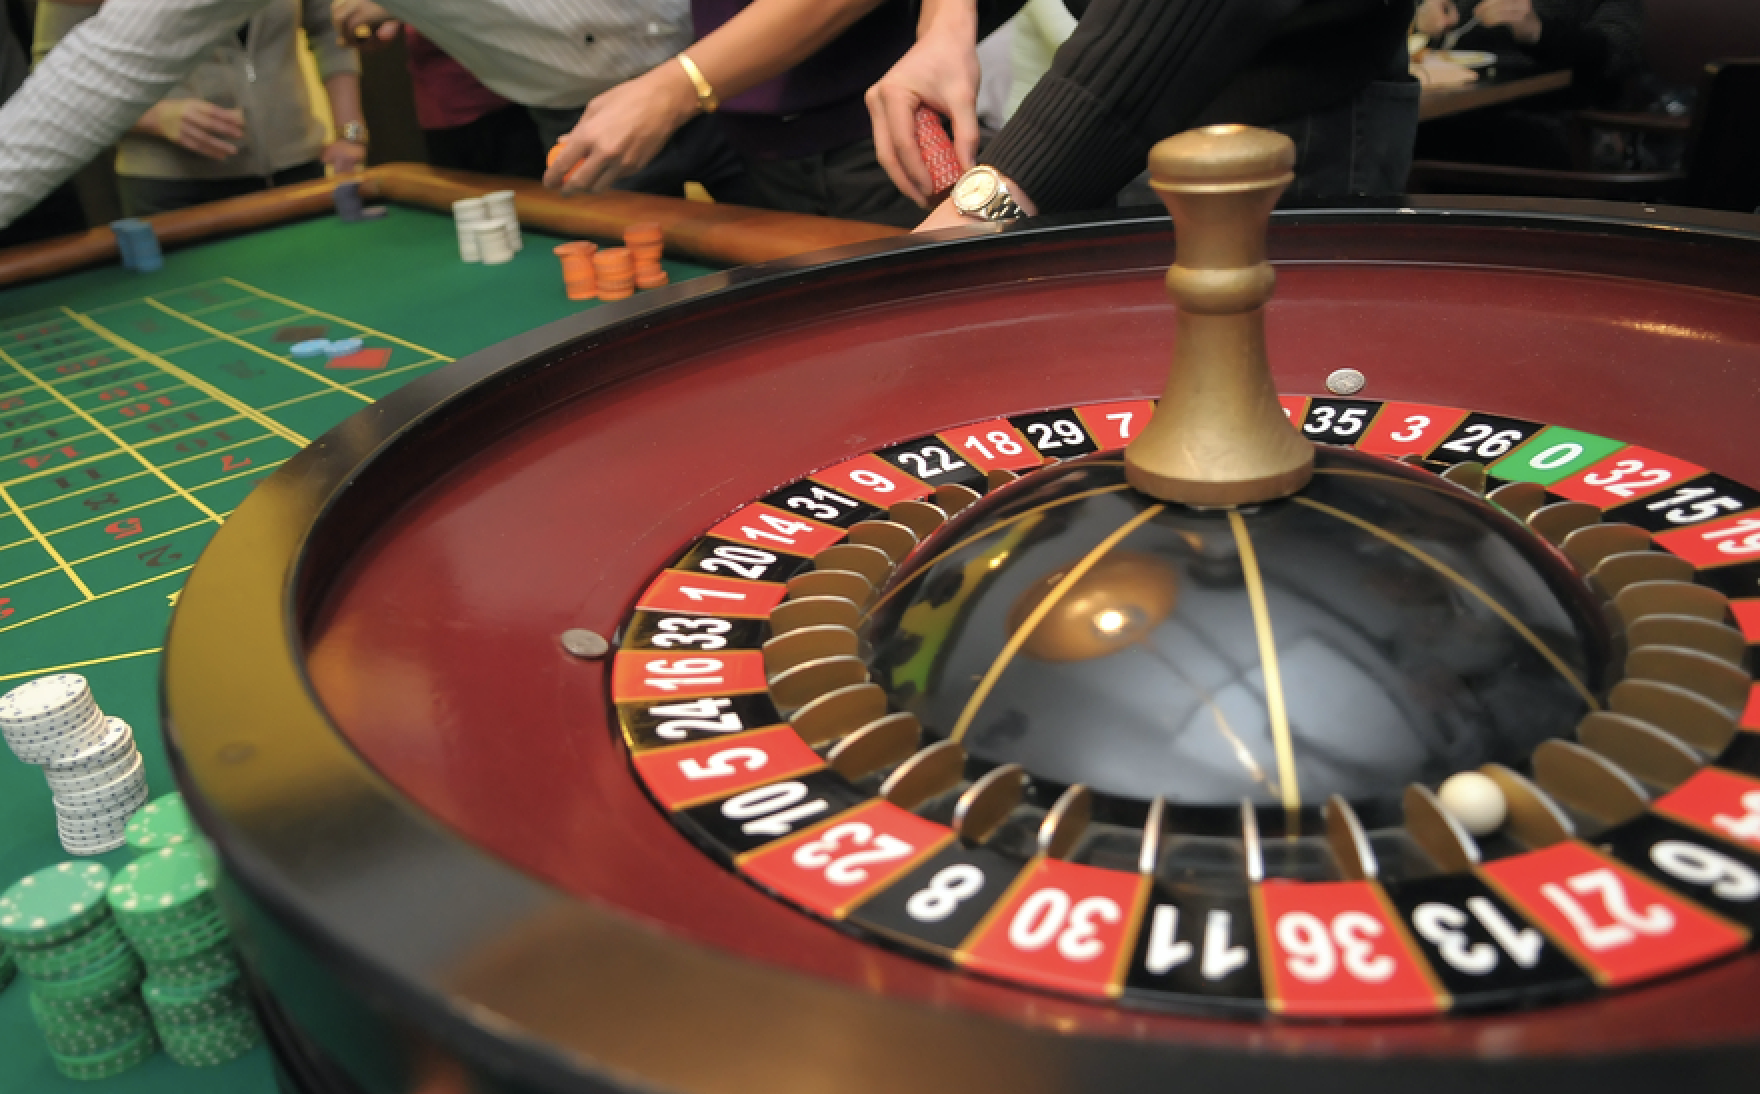 Enter the greatest casino site online with free bonuses